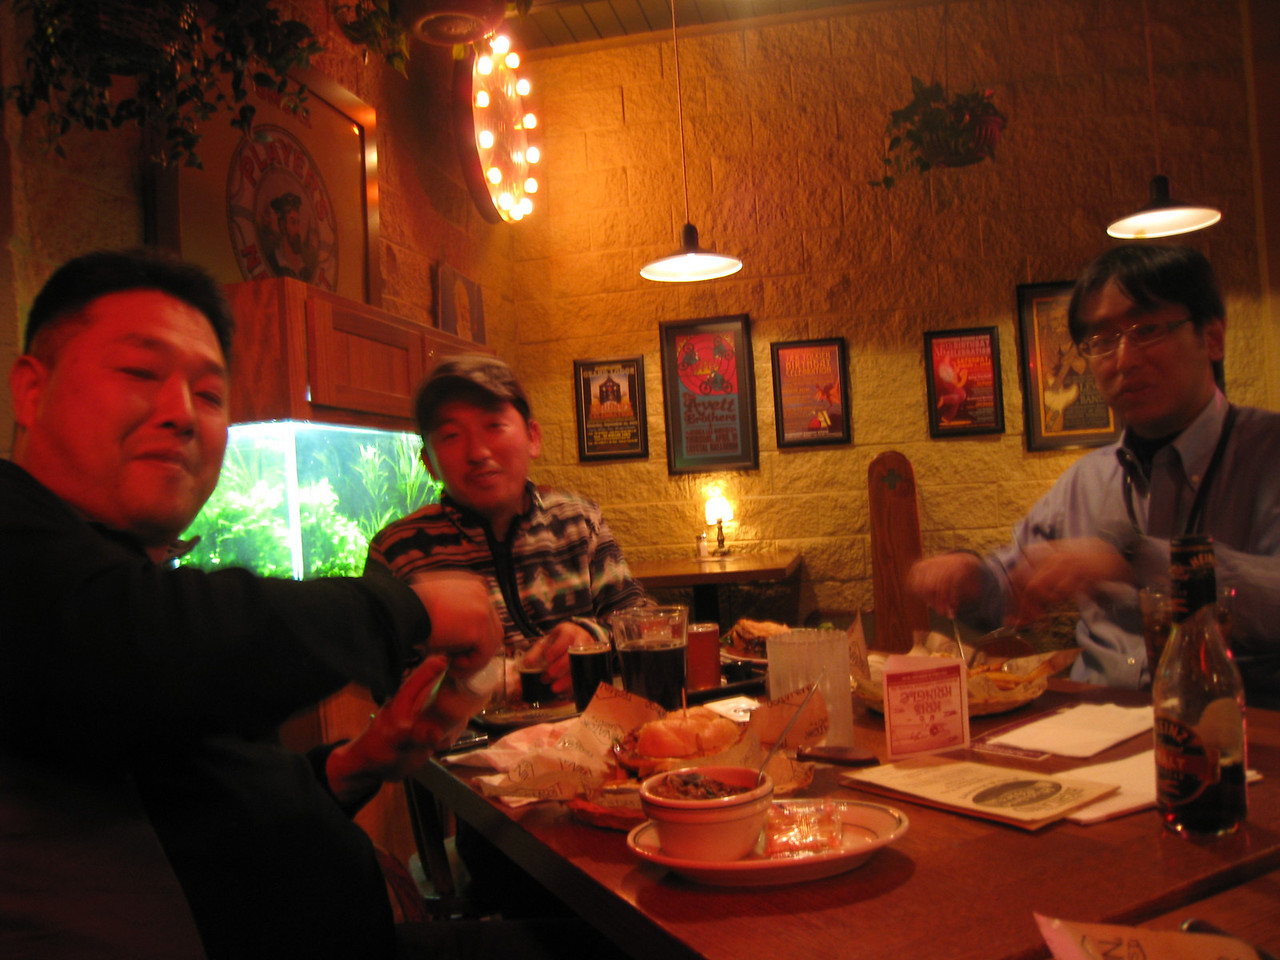 A quick dinner at the Highland Pub with Isamu, Atsuo & Sho after their hectic 4 day visit to Oregon Nurseries!